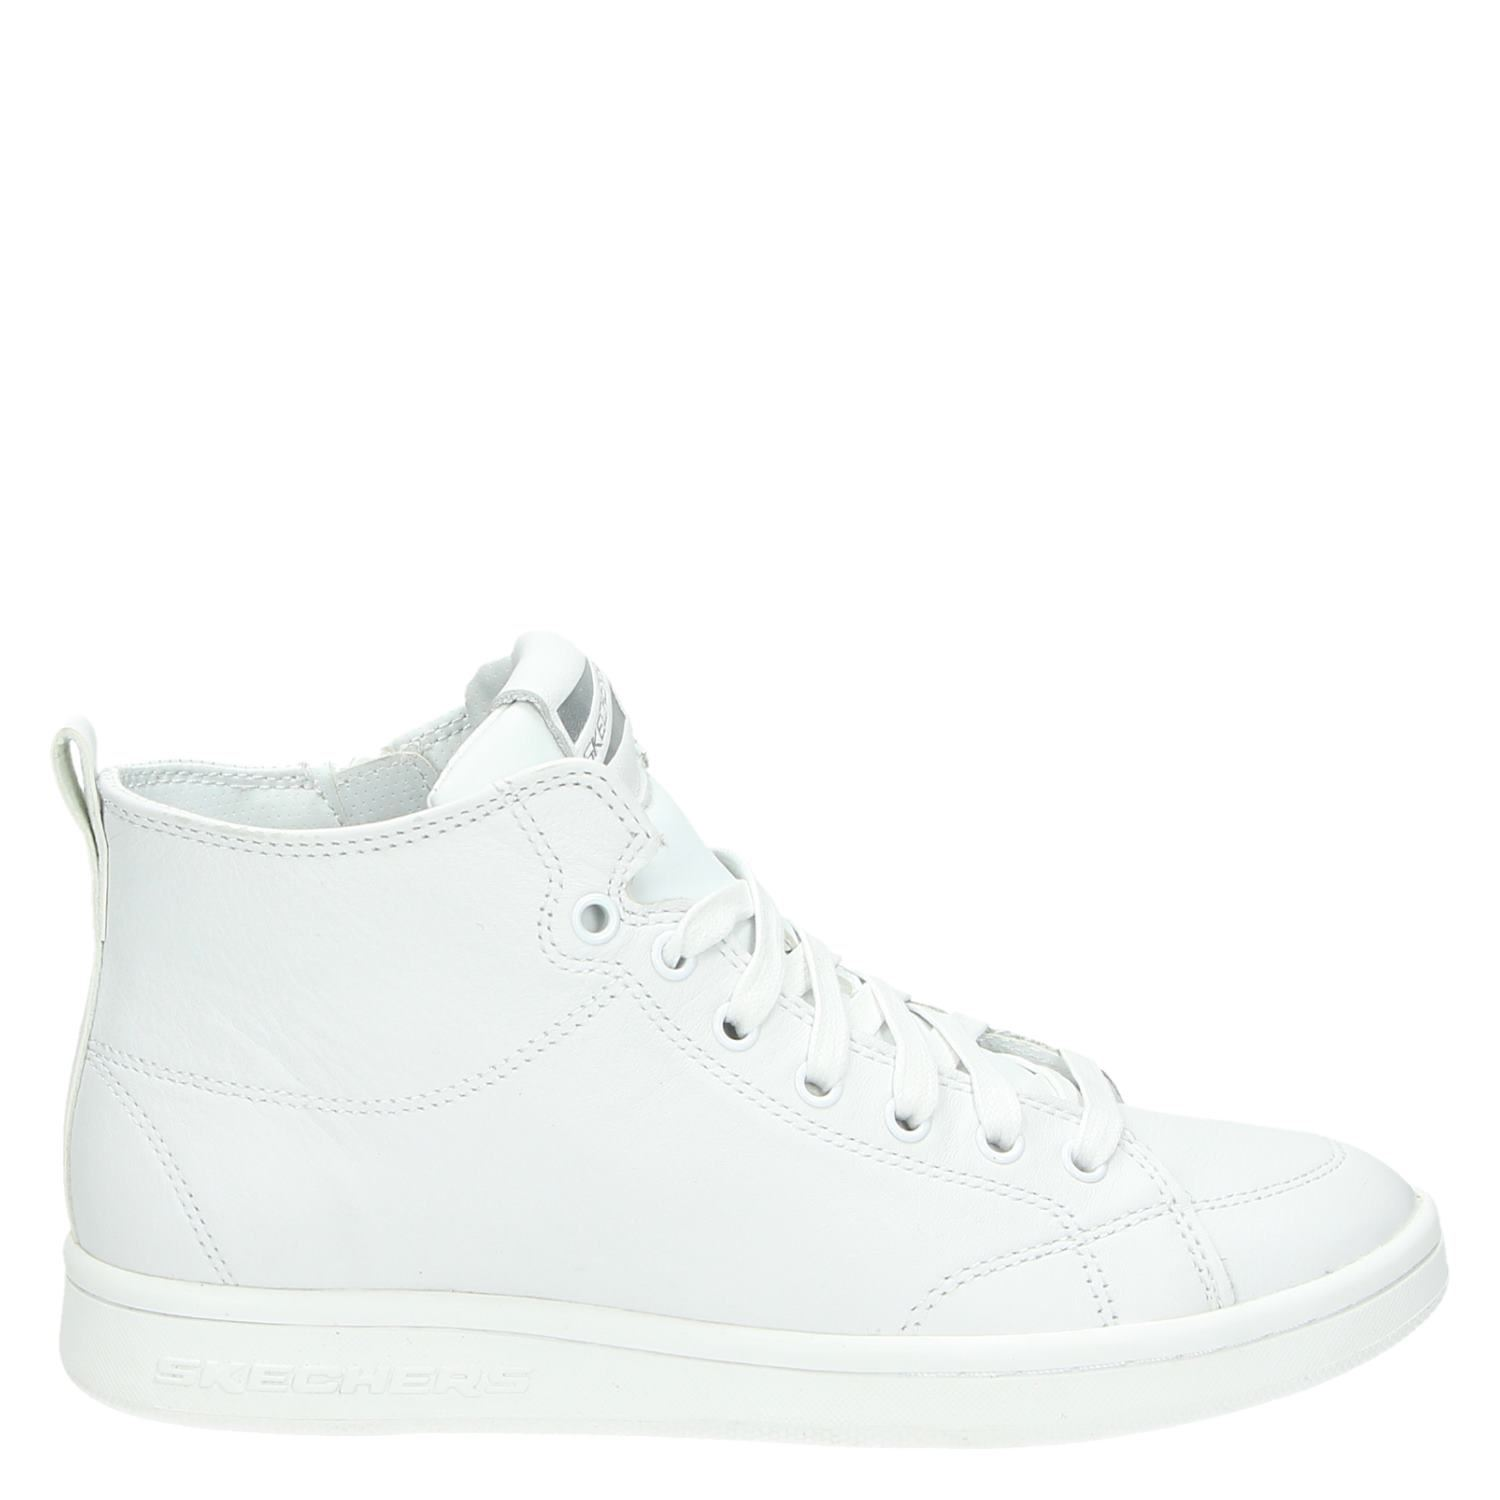 Blanc Chaussures Sketchers Pe7fhf0